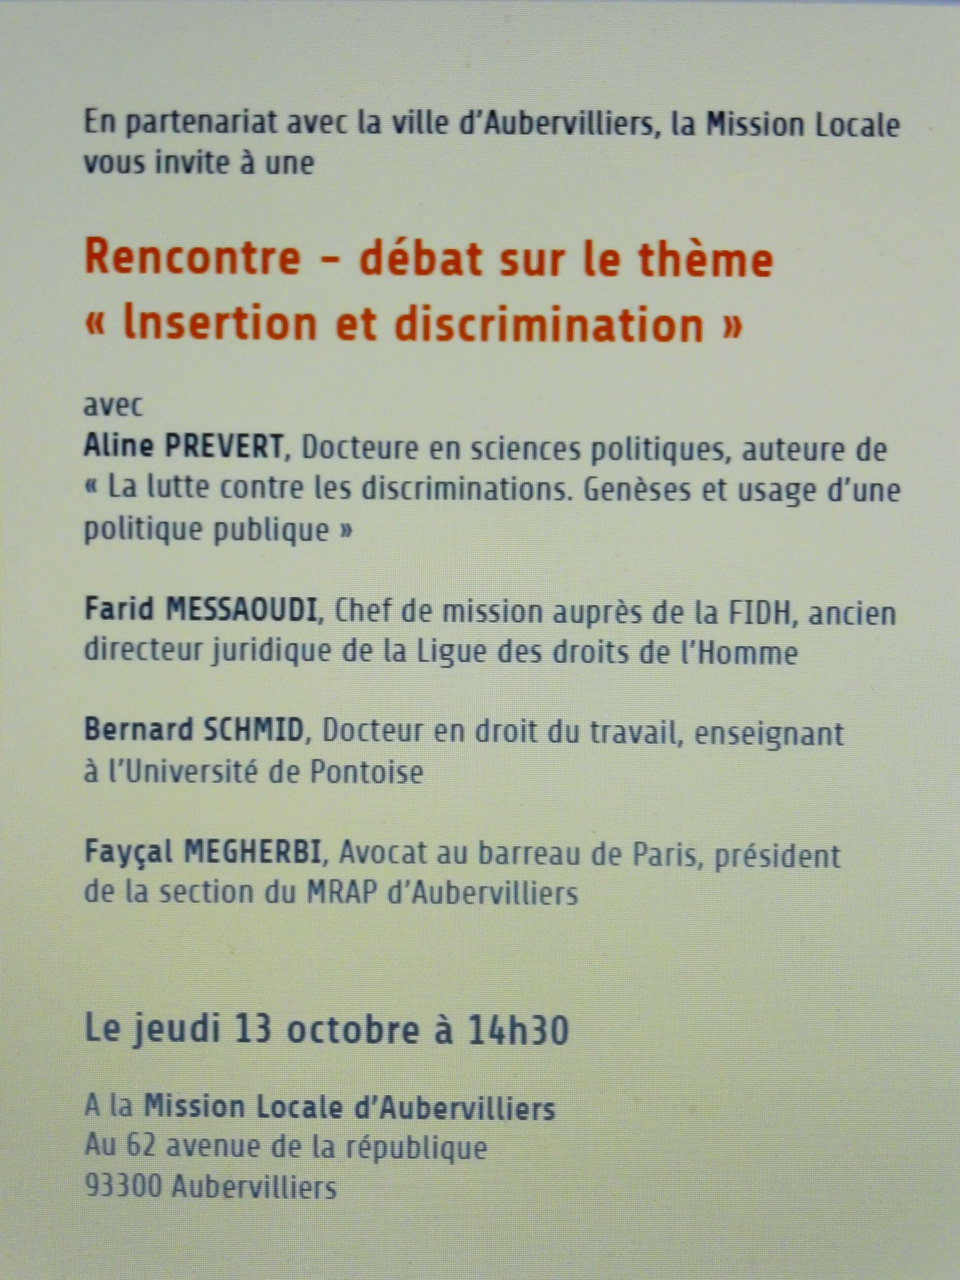 Rencontre-débat : Insertion et discrimination